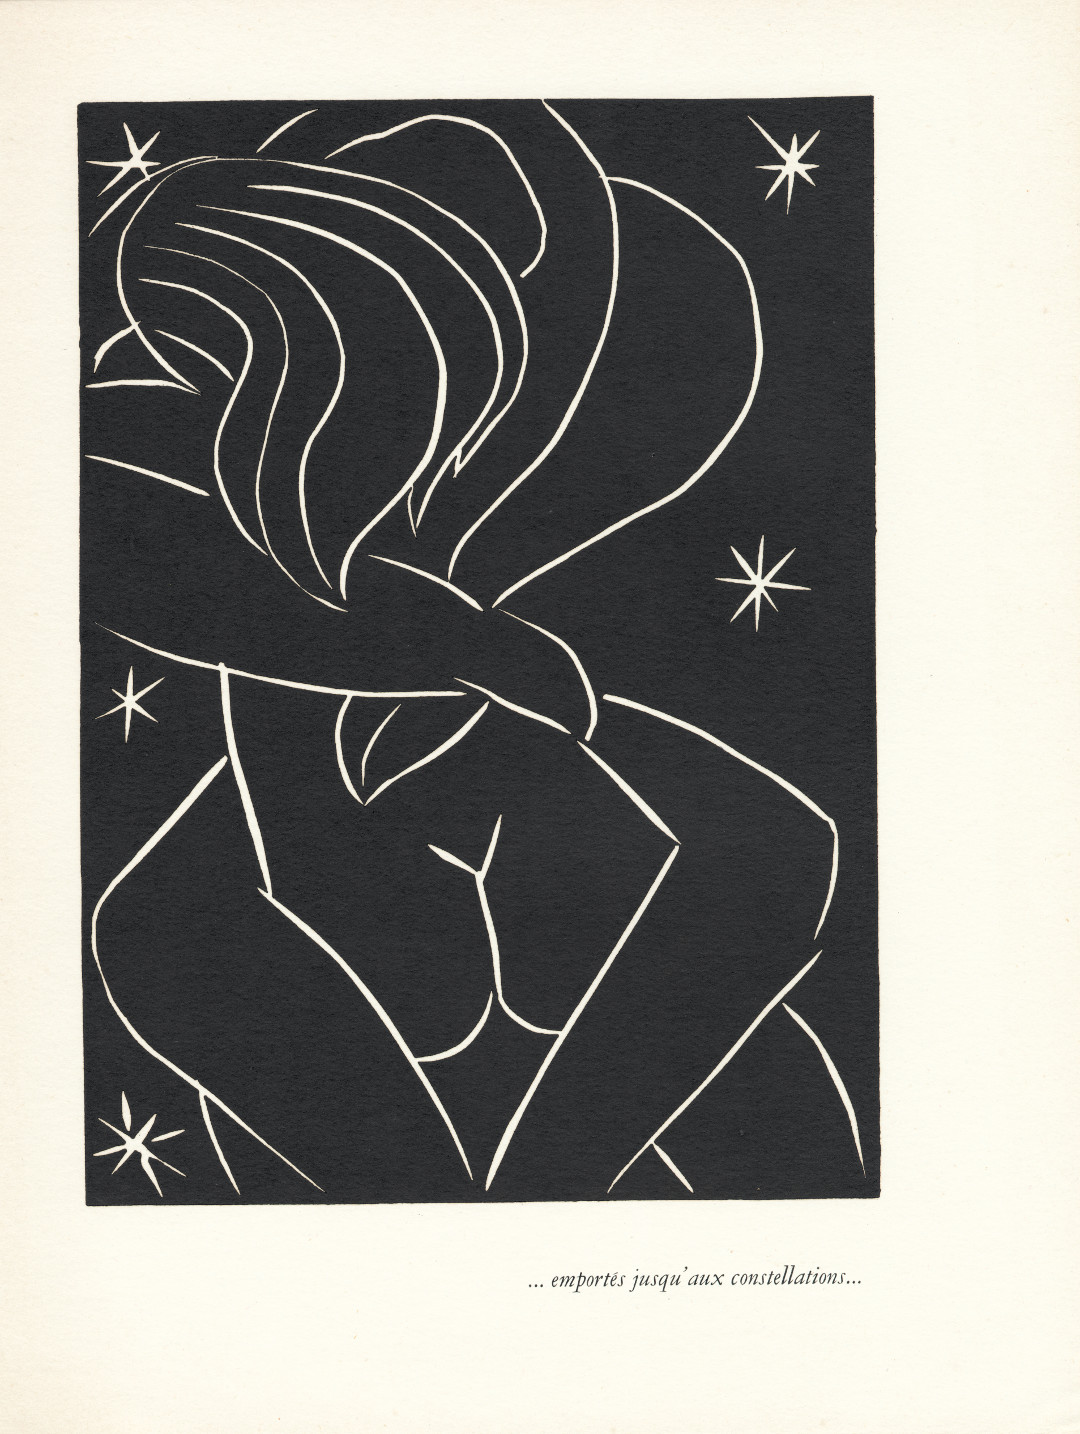 Who knew Henri Matisse did erotica?